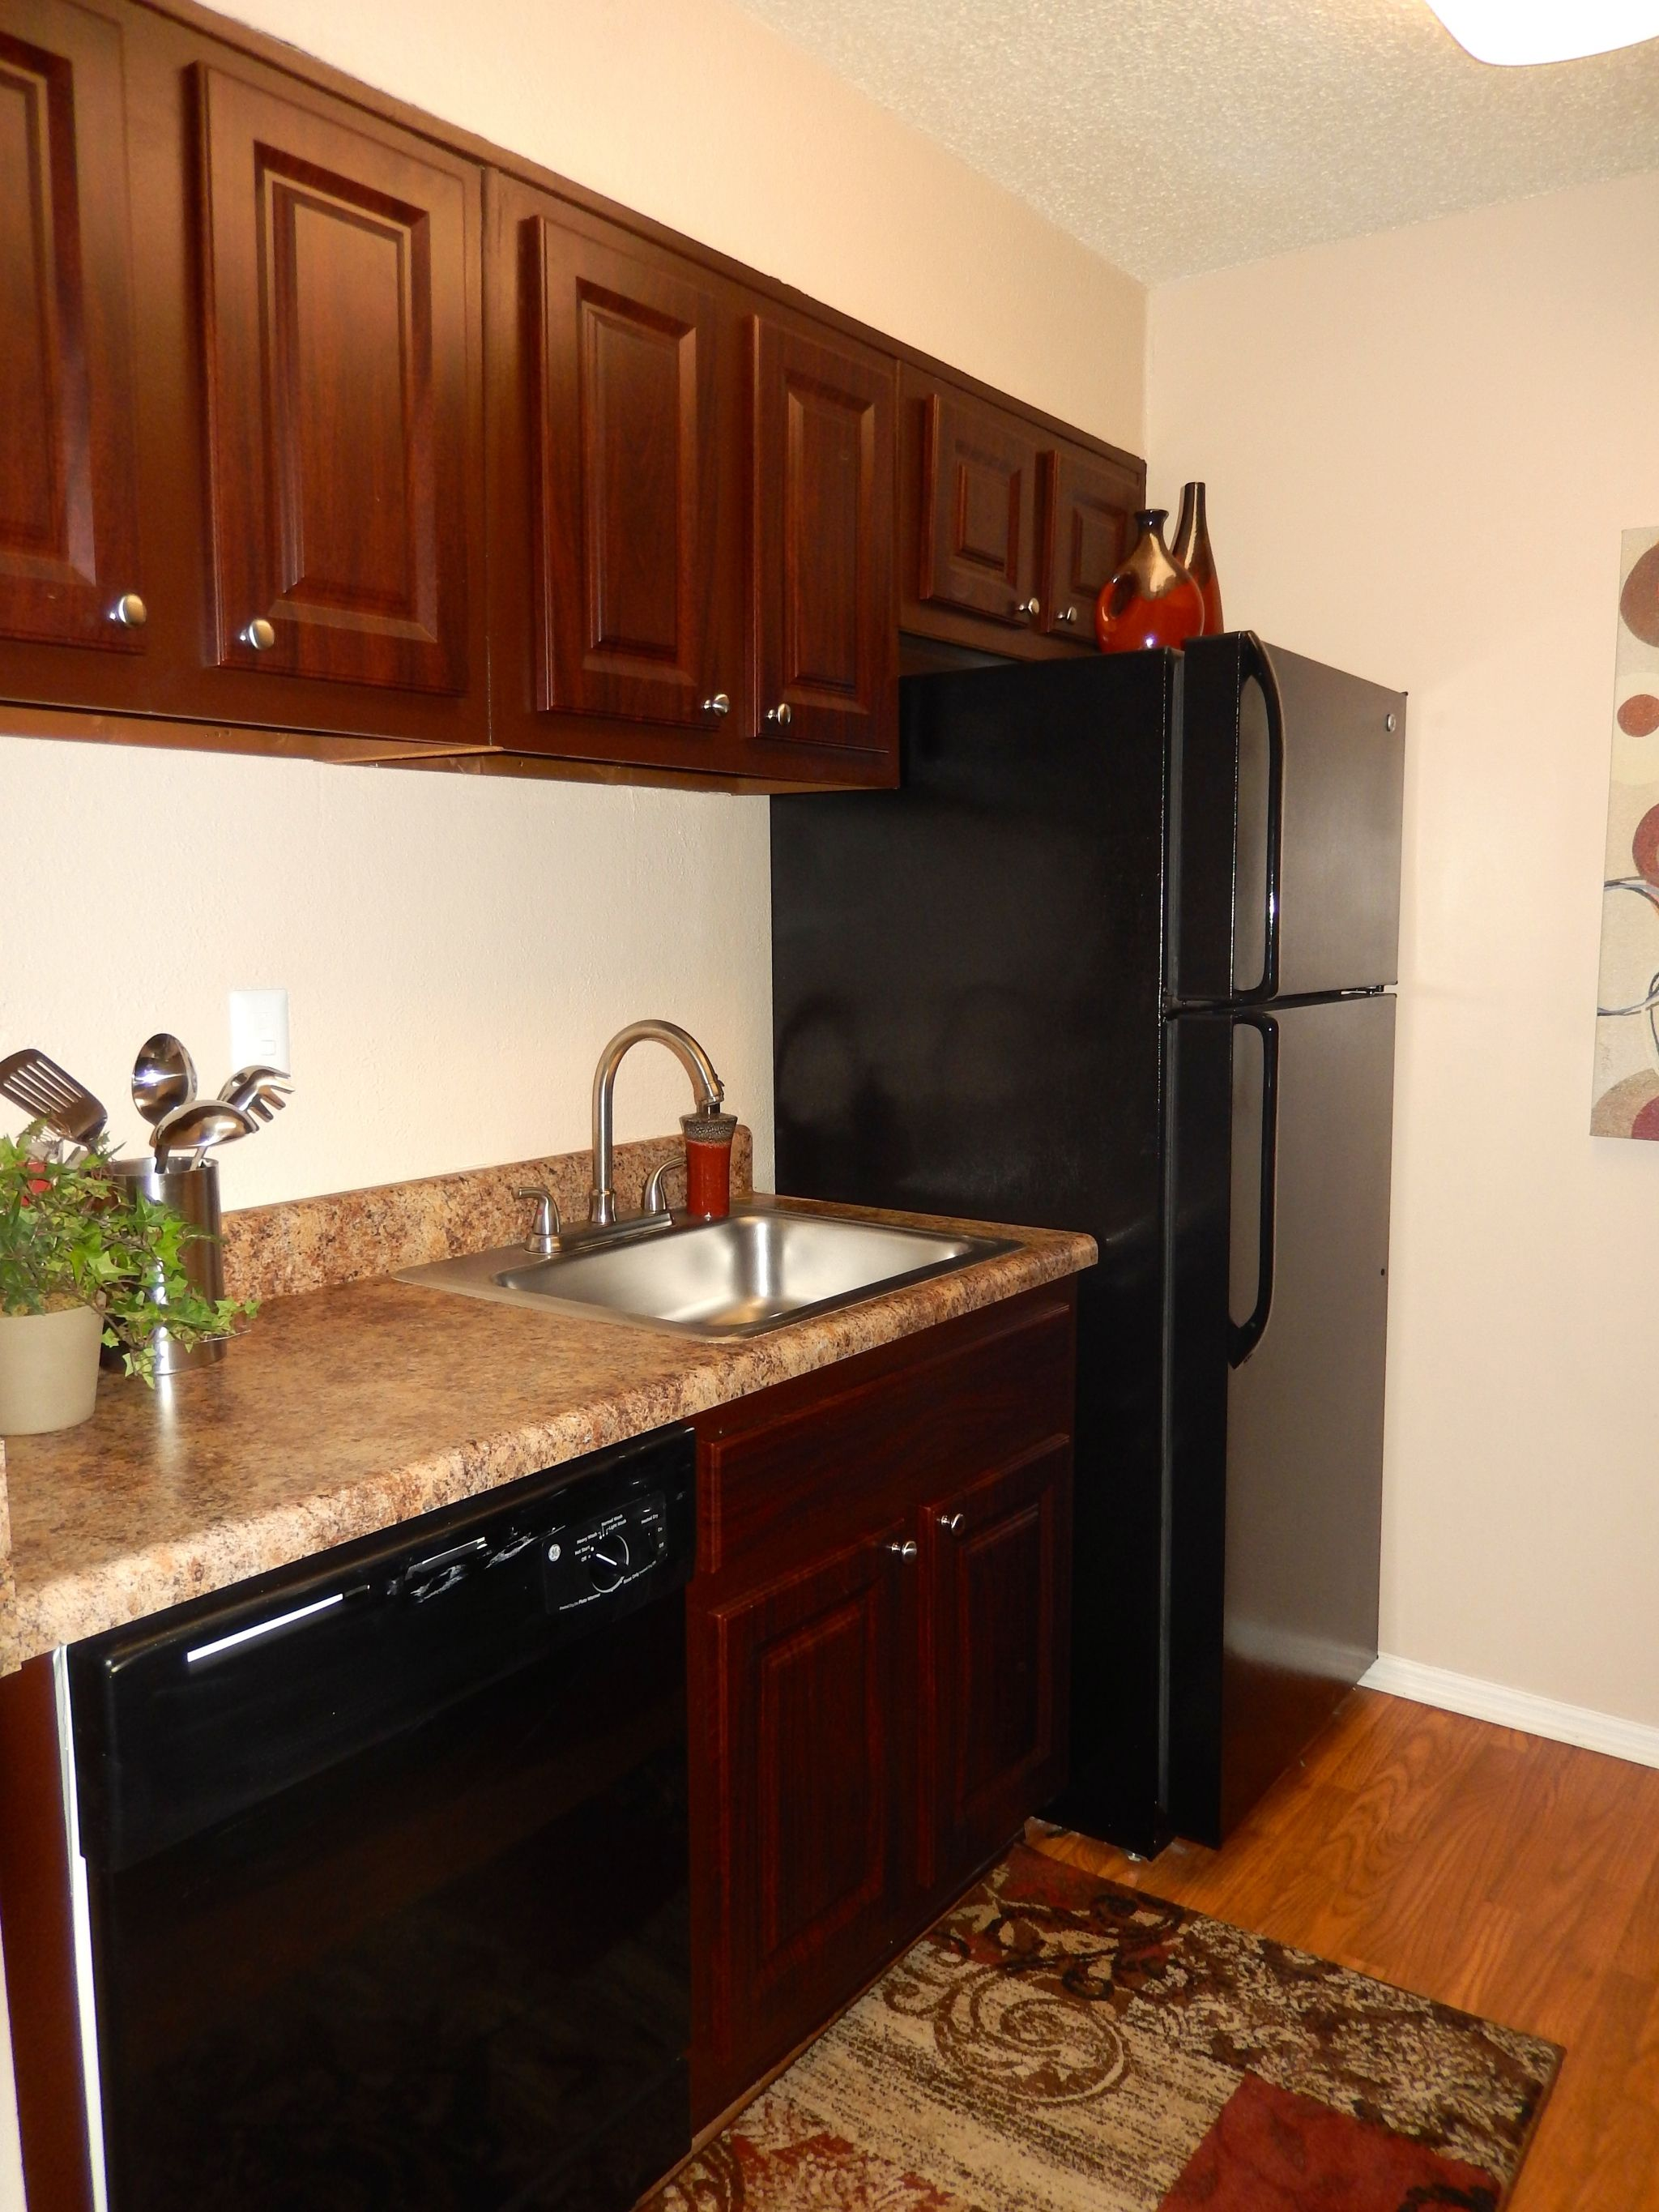 Kitchen with new cherry wood and black